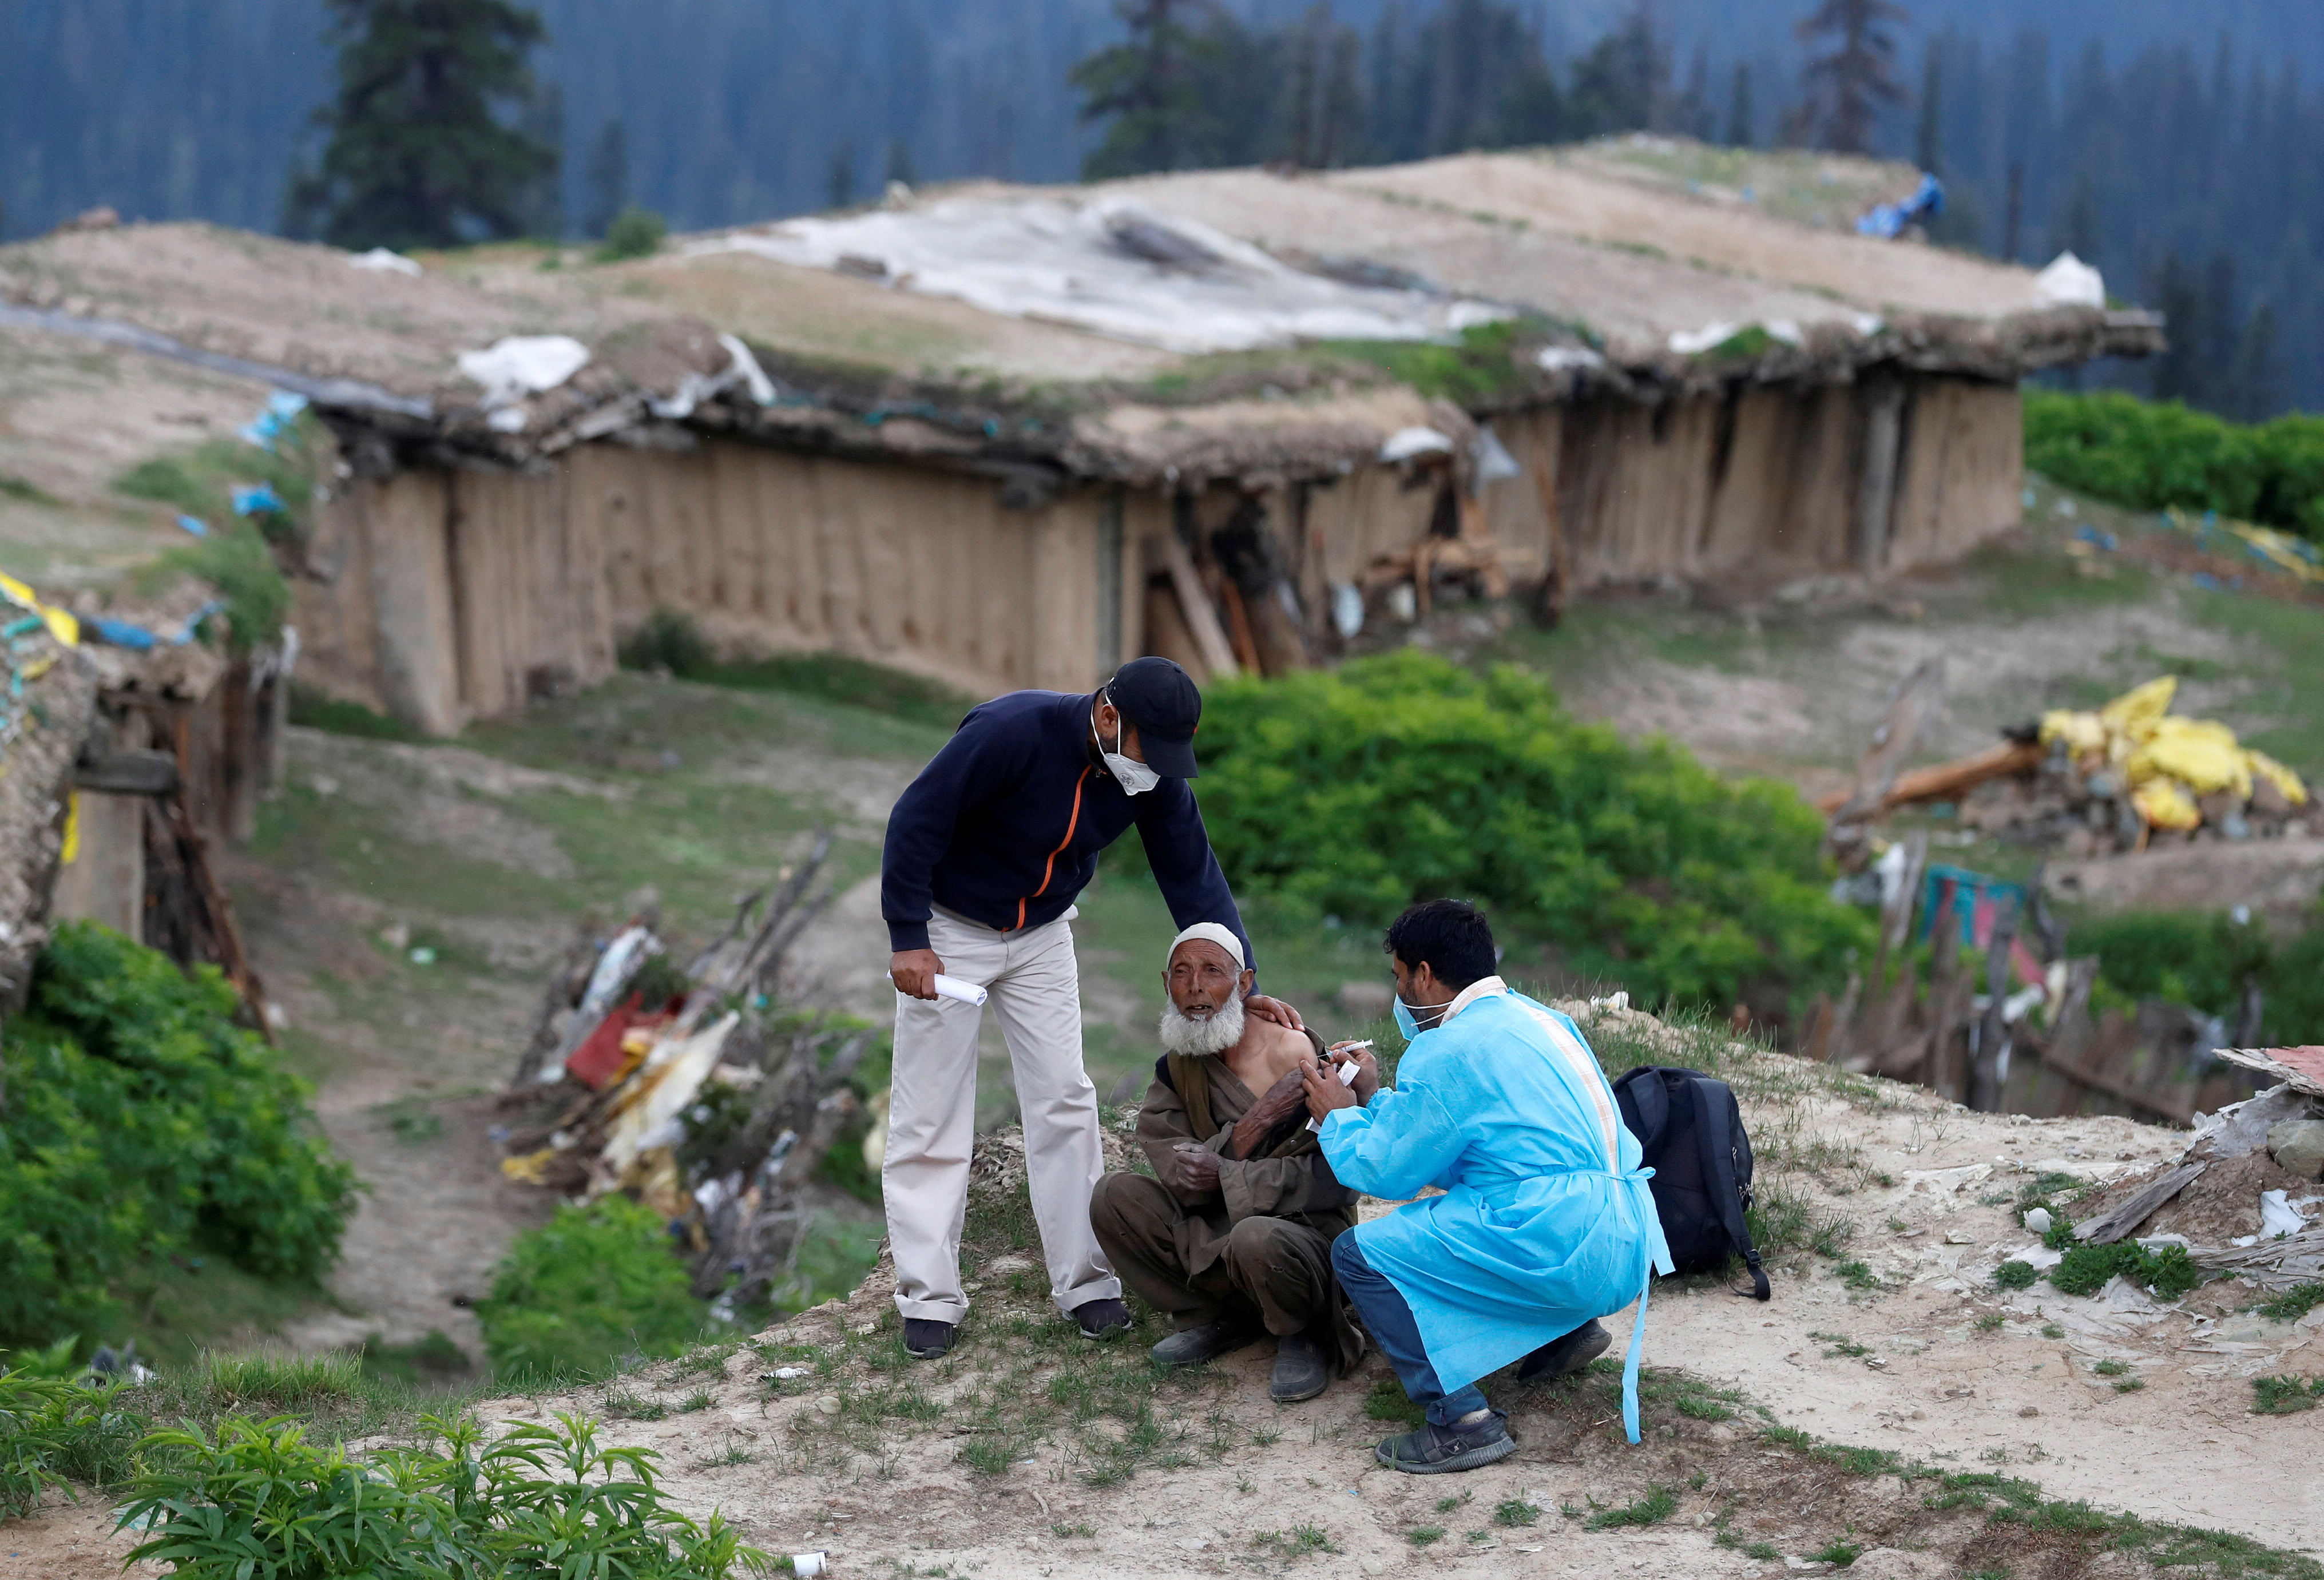 A shepherd man receives a dose of COVISHIELD, a coronavirus disease (COVID-19) vaccine manufactured by Serum Institute of India, during a vaccination drive at Tosa Maidan in central Kashmir's Budgam district June 21, 2021. REUTERS/Danish Ismail